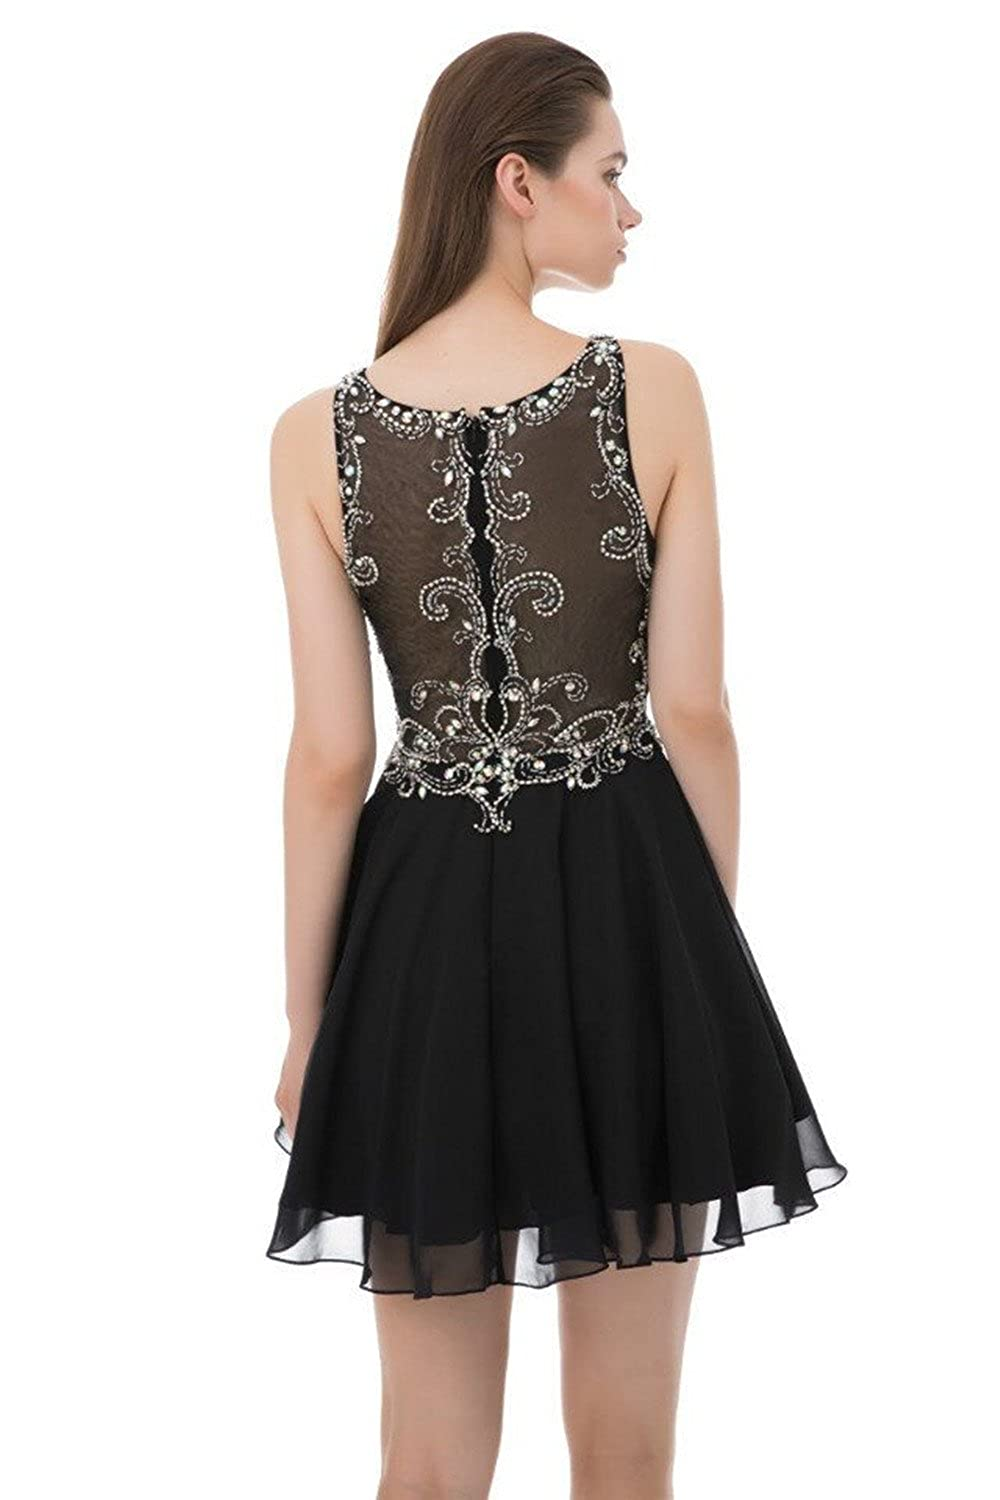 2d2da8d0db1 SHANGSHANGXI Little Black Party Dress Rhinestone Beaded Prom Dresses  Sparkly Cocktail Gown at Amazon Women s Clothing store